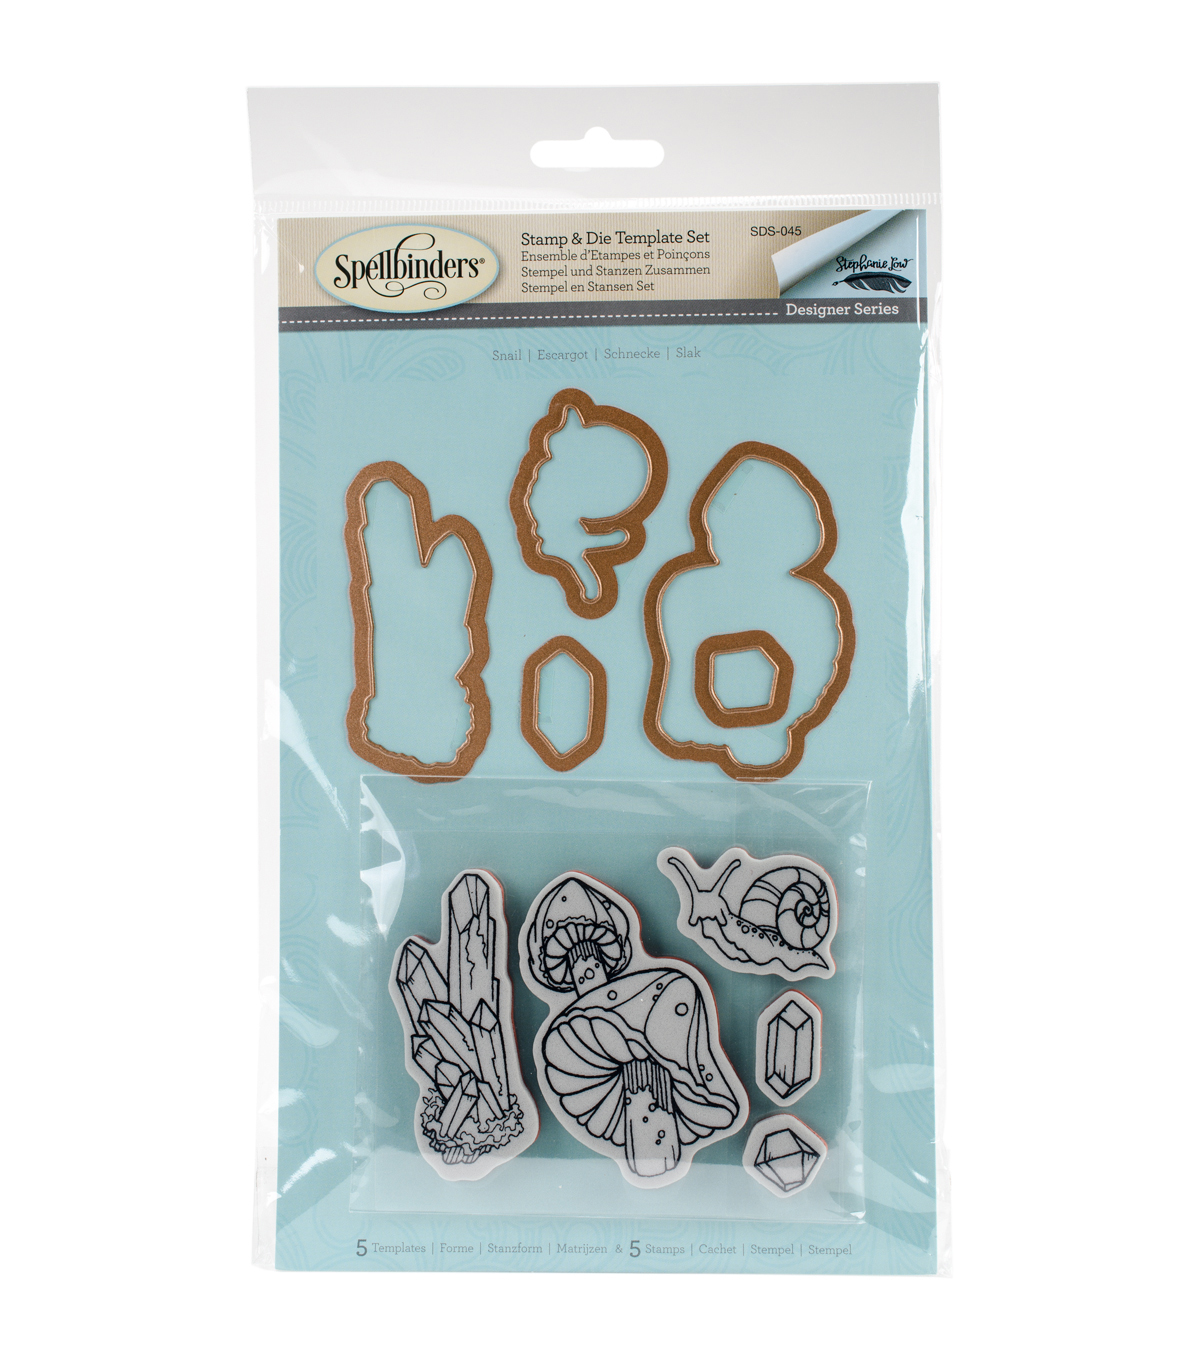 Spellbinders® Earth Air Water Stephanie Low Stamp & Die Set-Snail